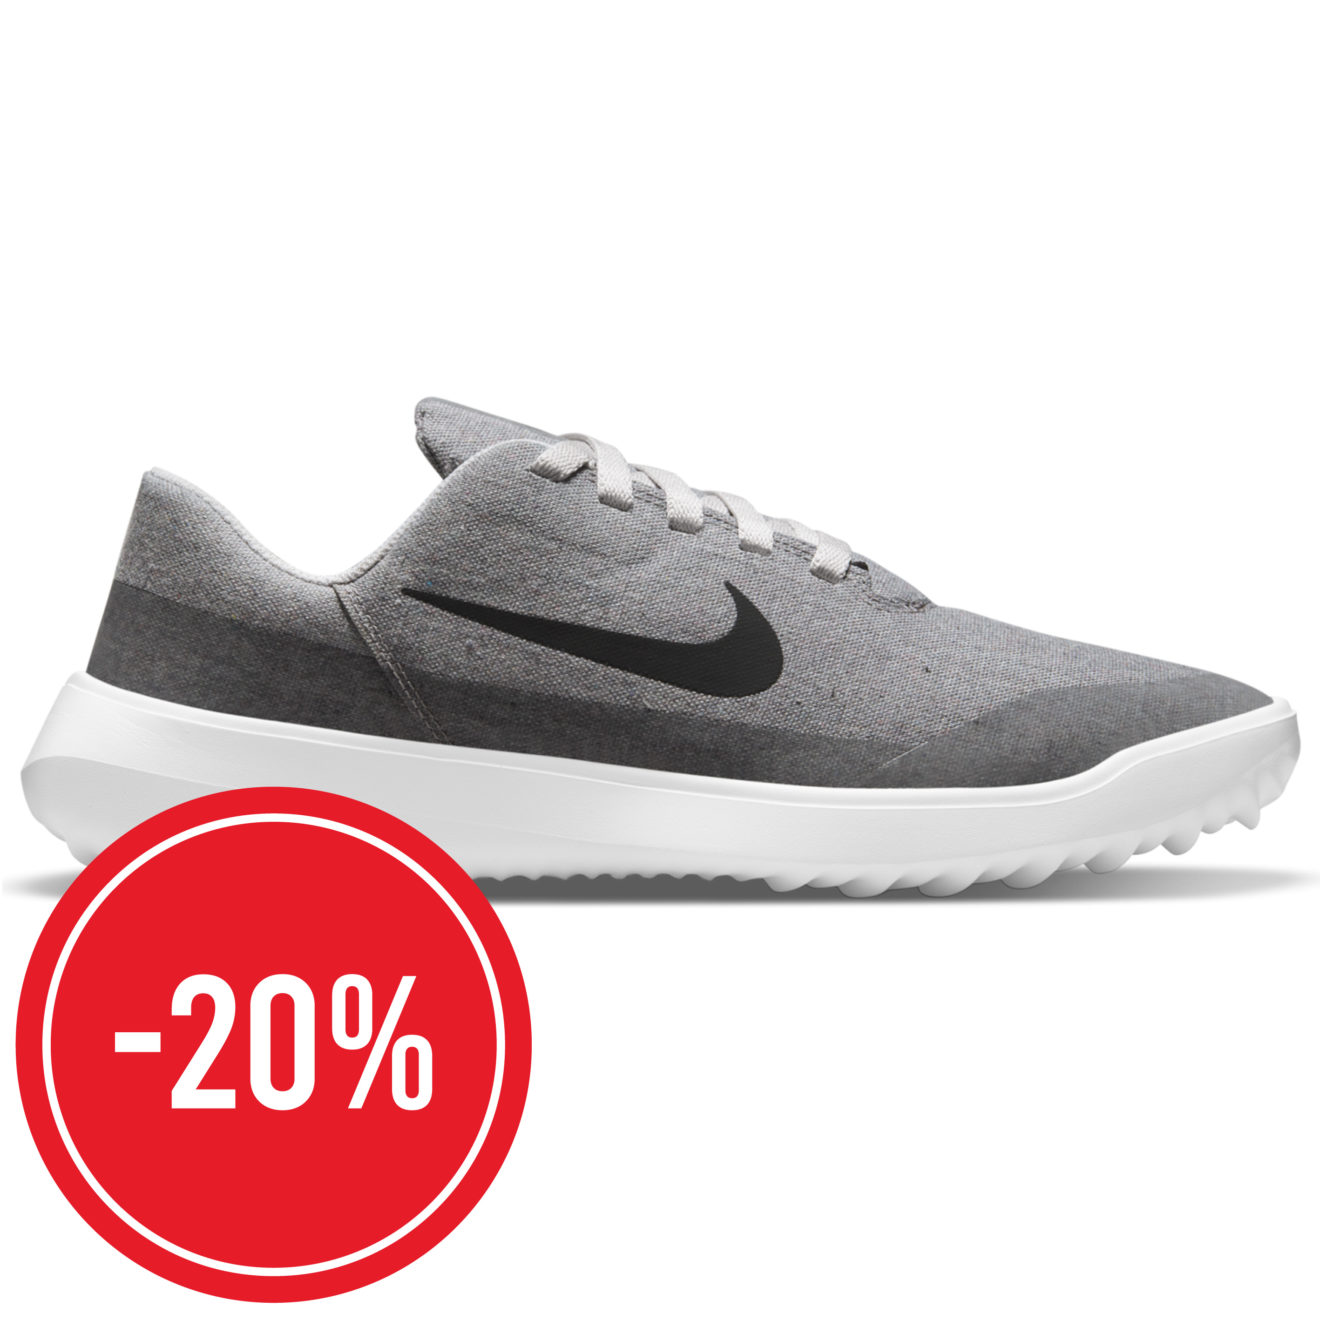 chaussures-nike-victory-20%